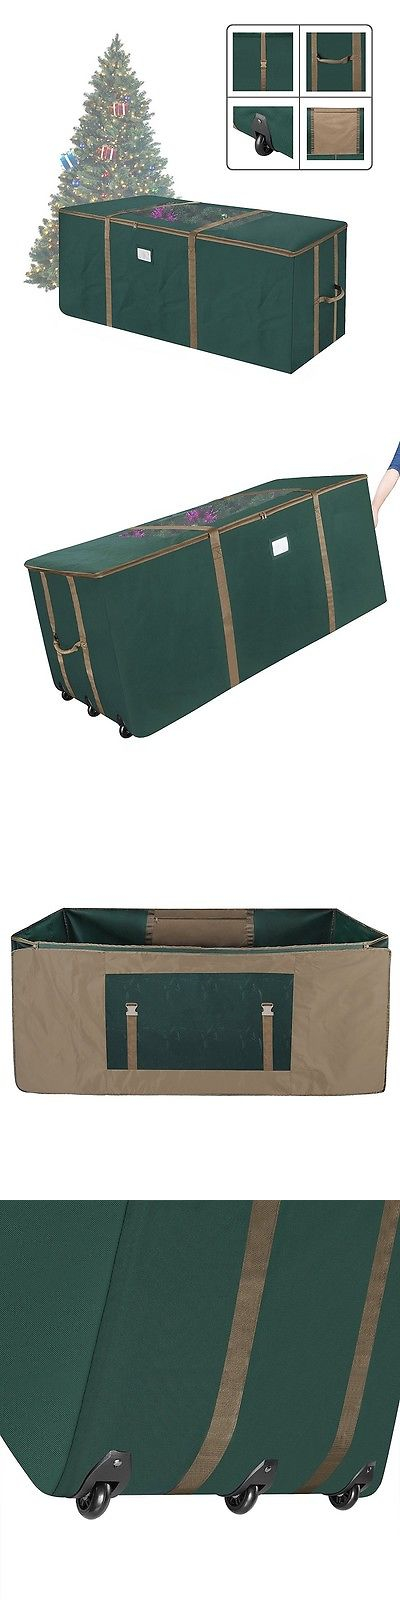 Tree Stands Skirts And Storage 166726 Large Christmas Tree  - Large Christmas Tree Stands For Sale